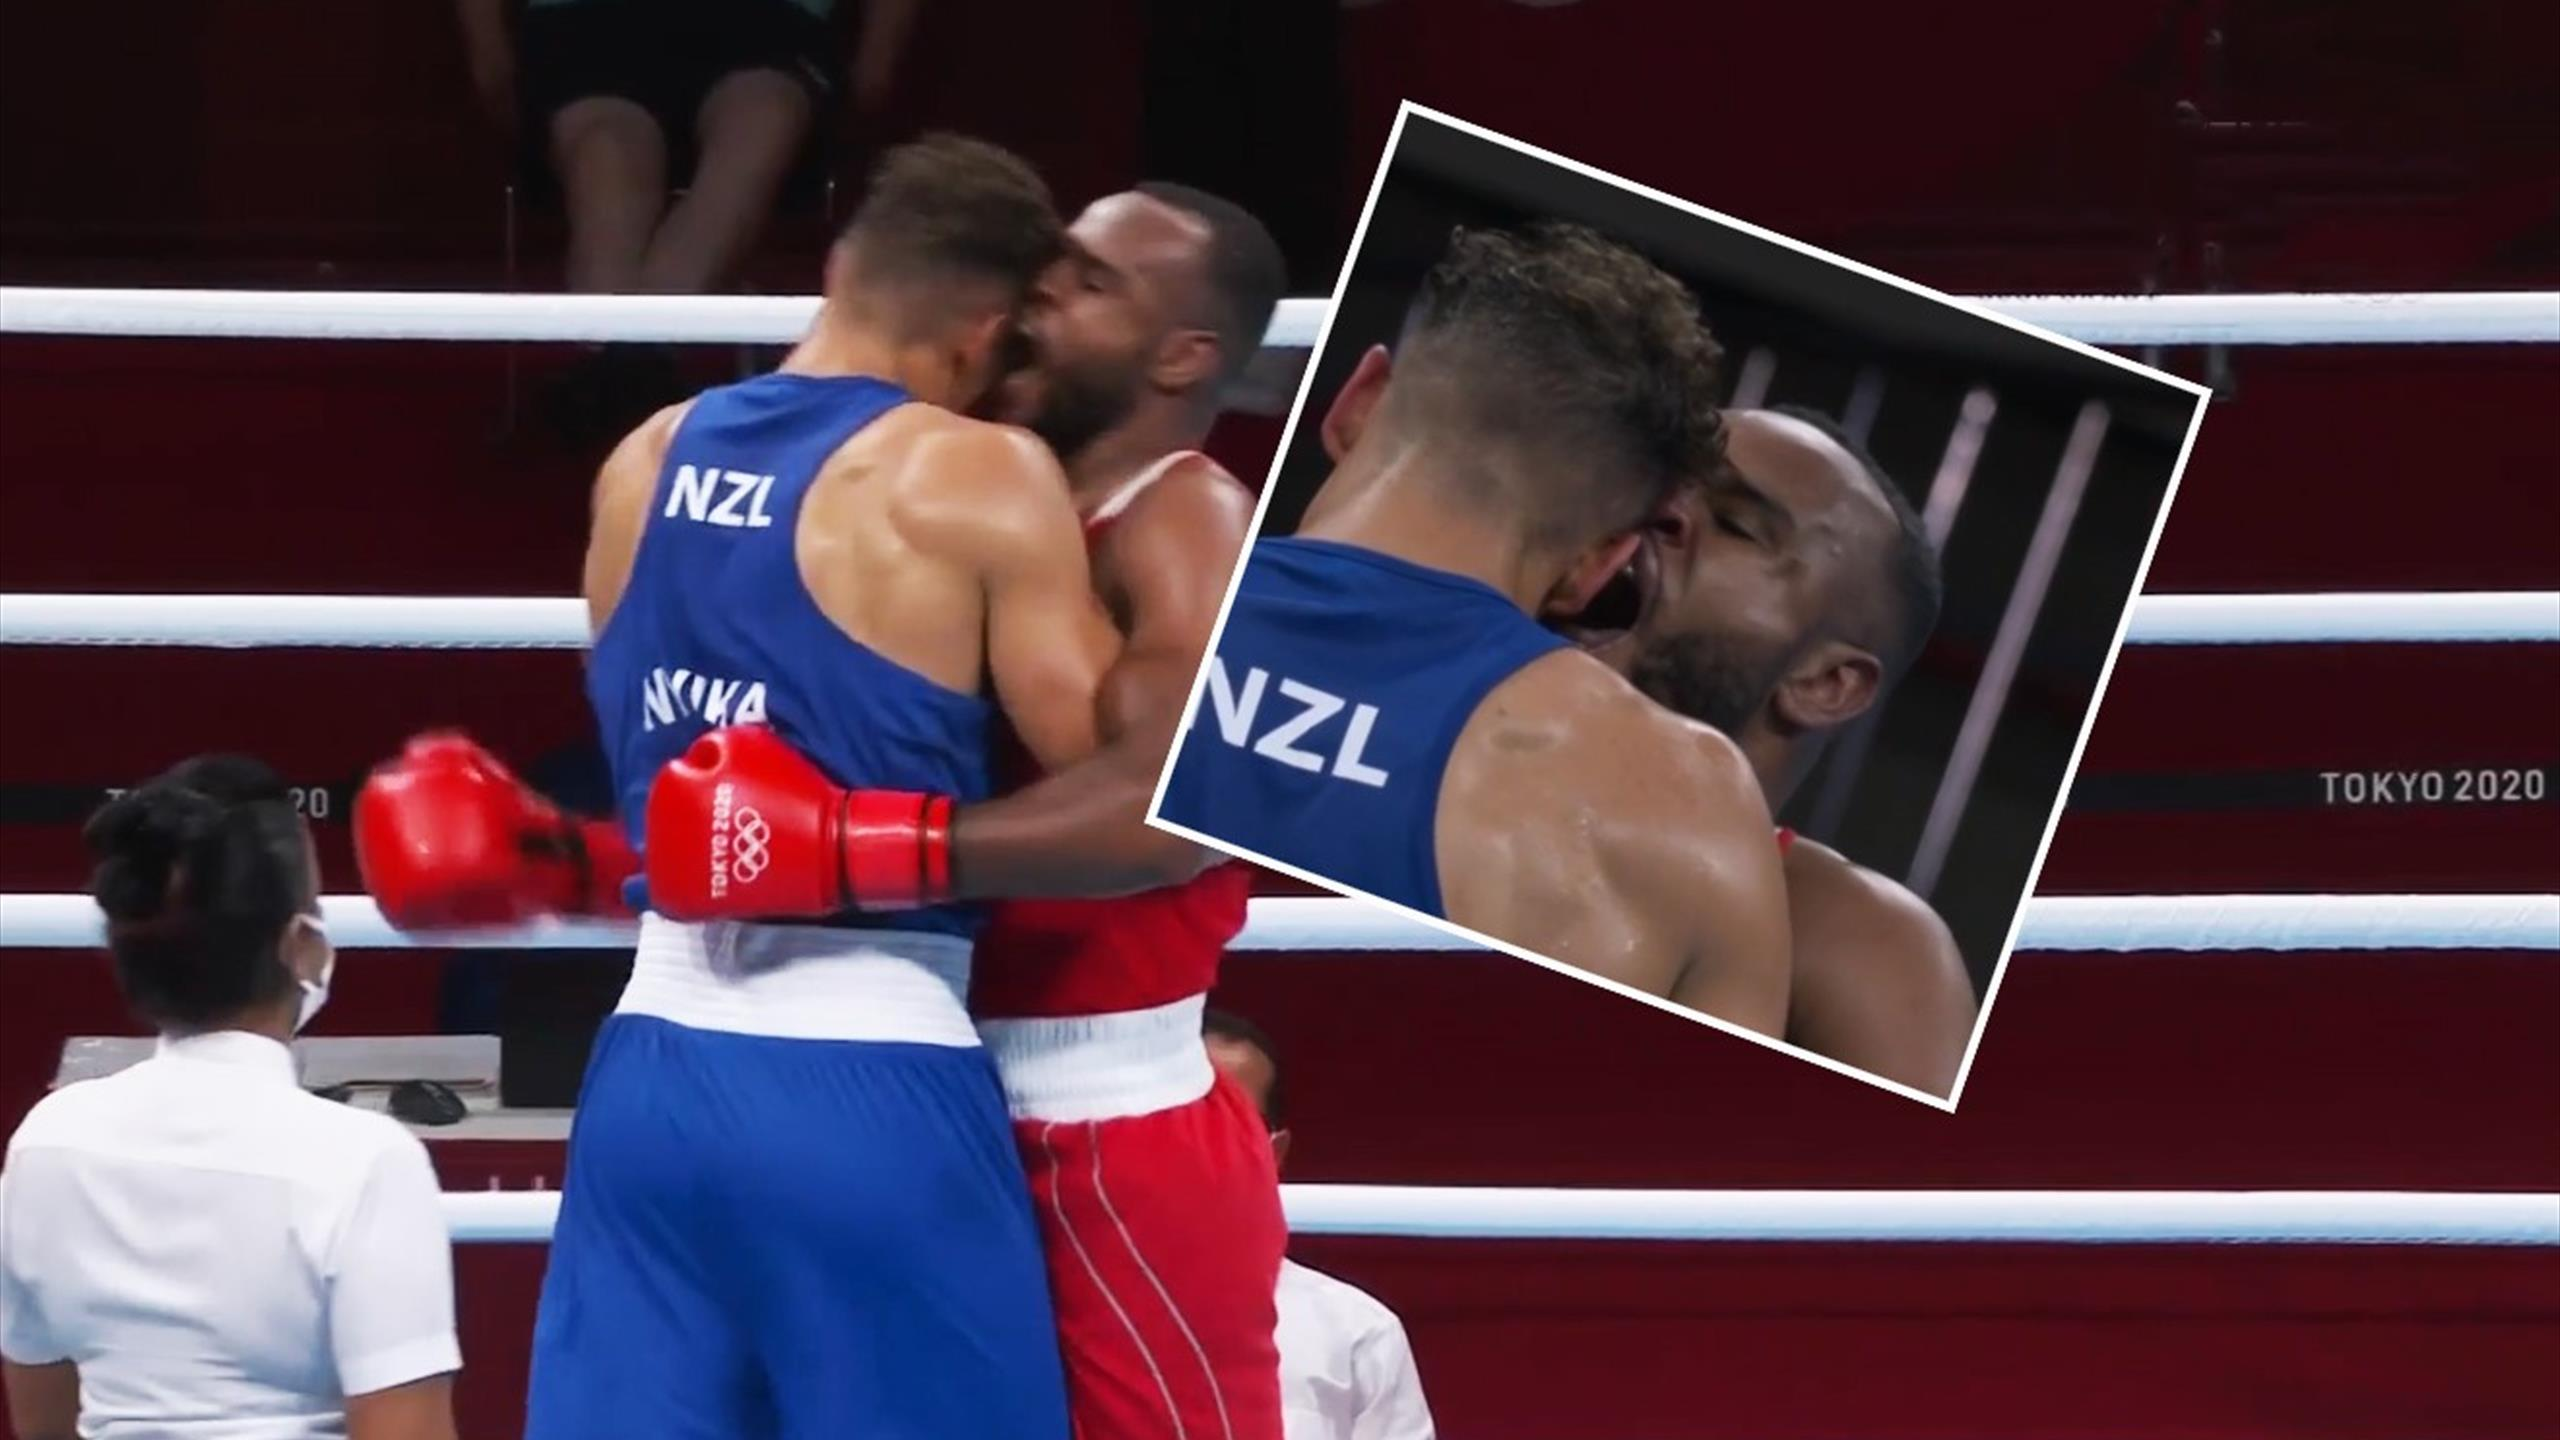 Tokyo 2020 – 'Act of absolute madness' – Boxer Youness Baalla attempts to bite opponent David Nyika's ear off